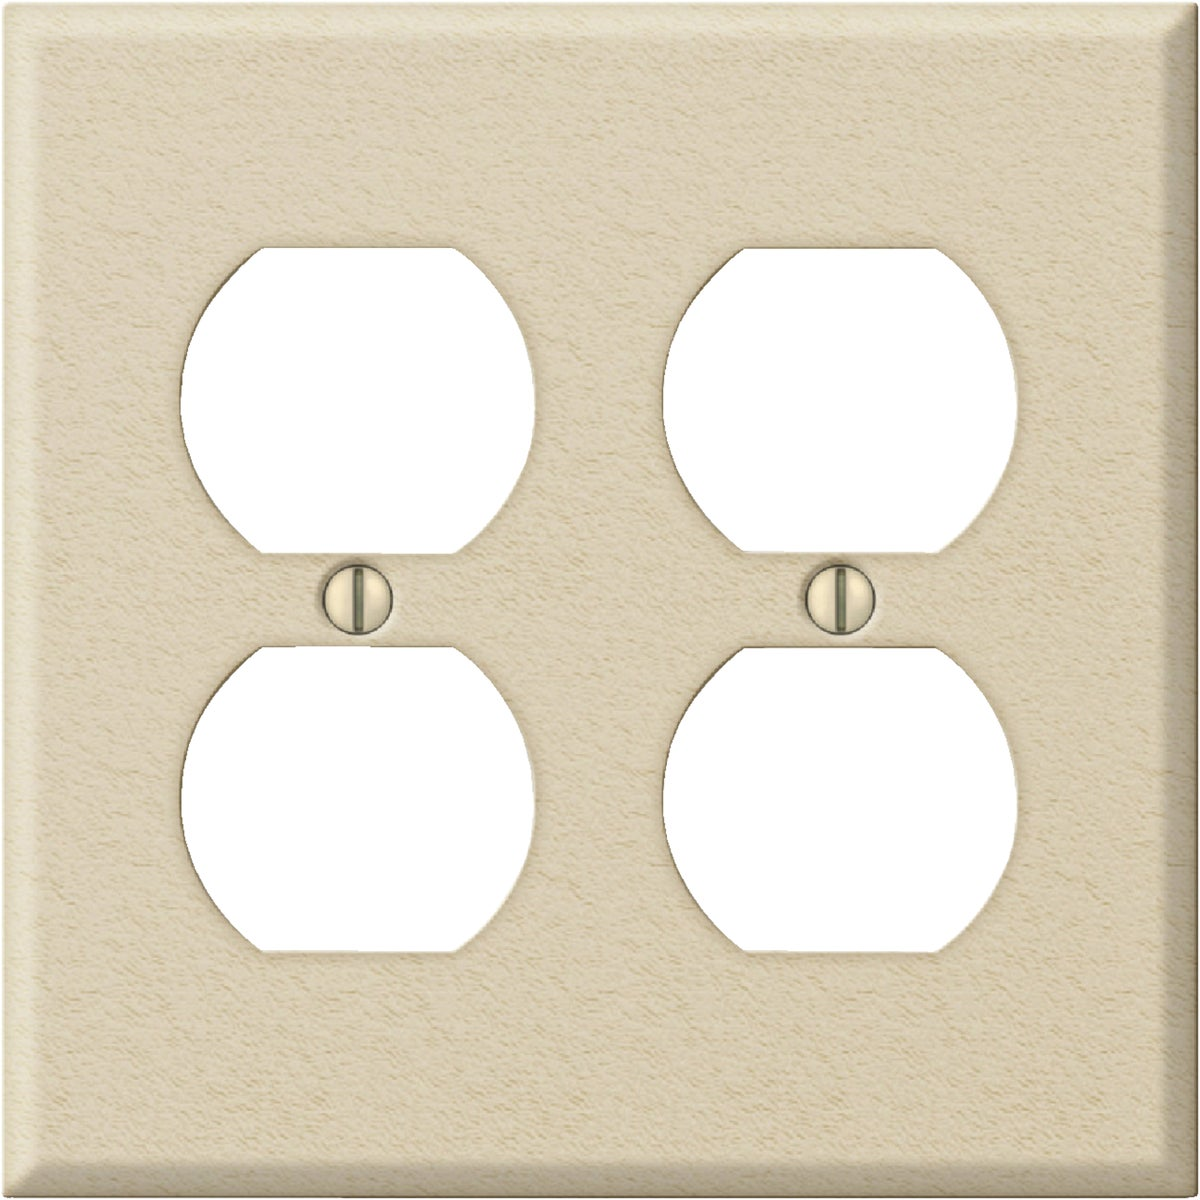 IV DBL OUTLET WALL PLATE - 8IK118 by Jackson Deerfield Mf